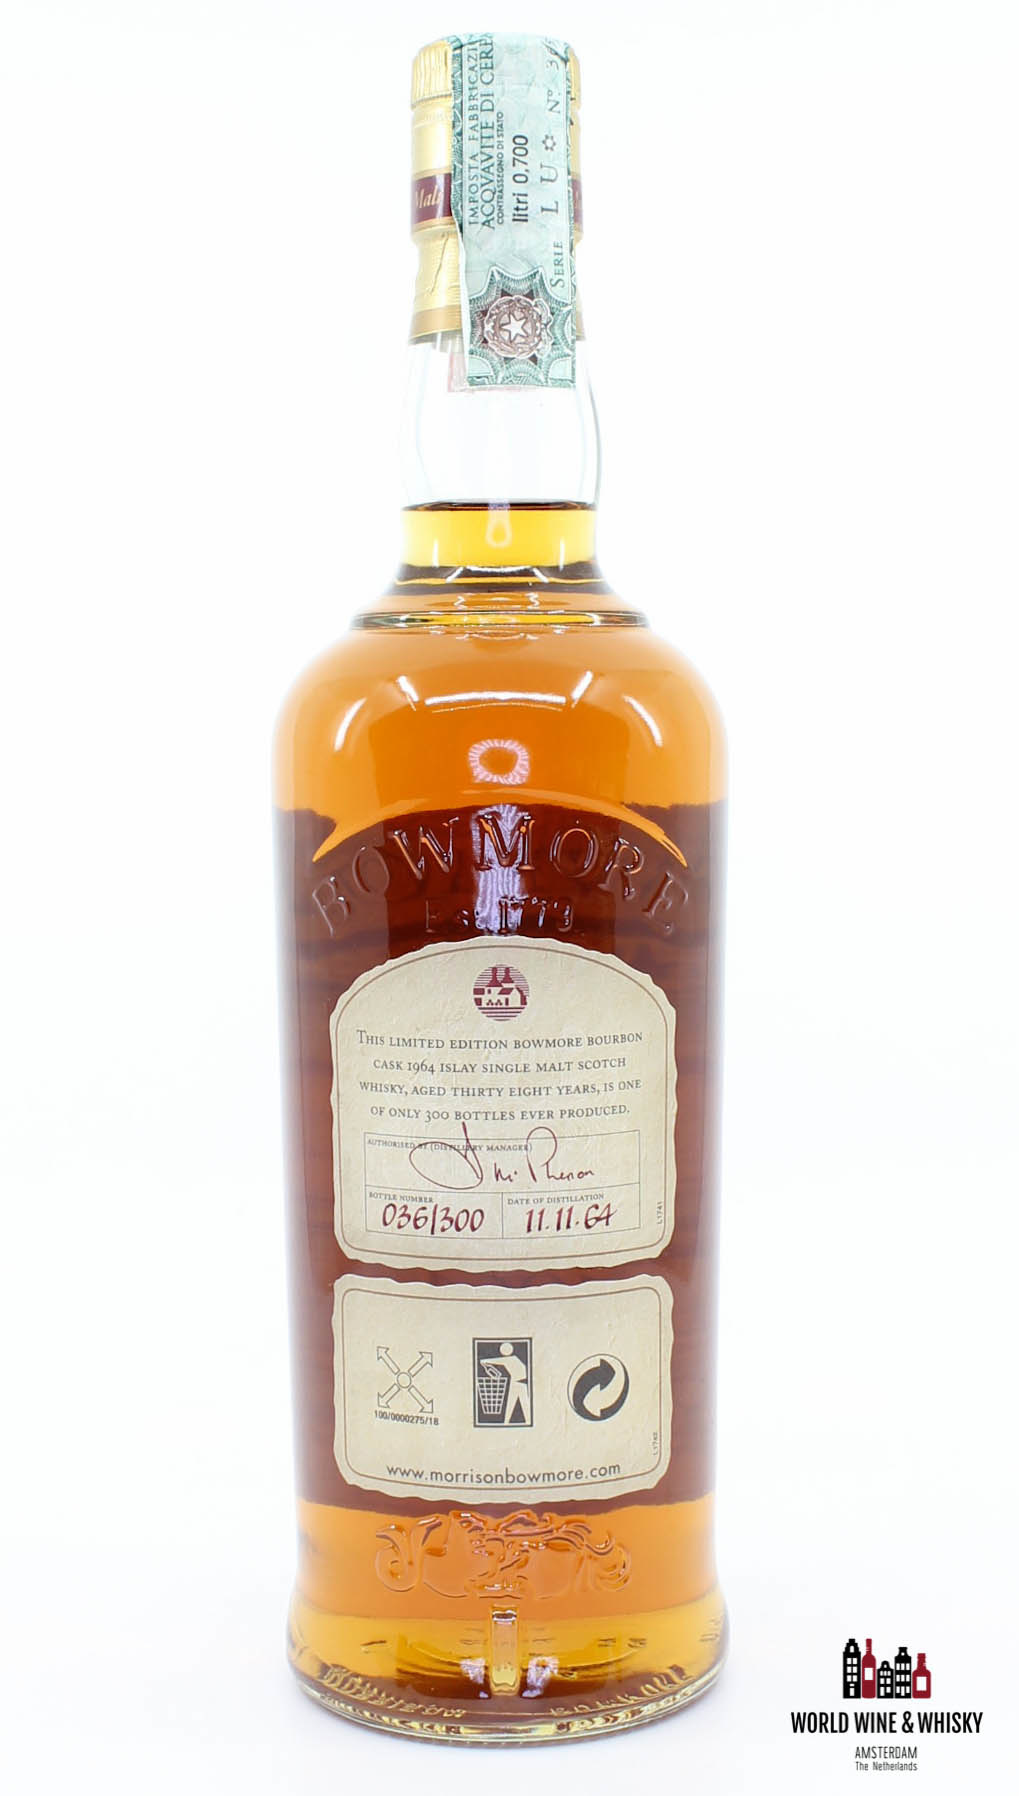 Bowmore Bowmore 38 Years Old 1964 2003 Bourbon Cask - The Trilogy Series 43.2%